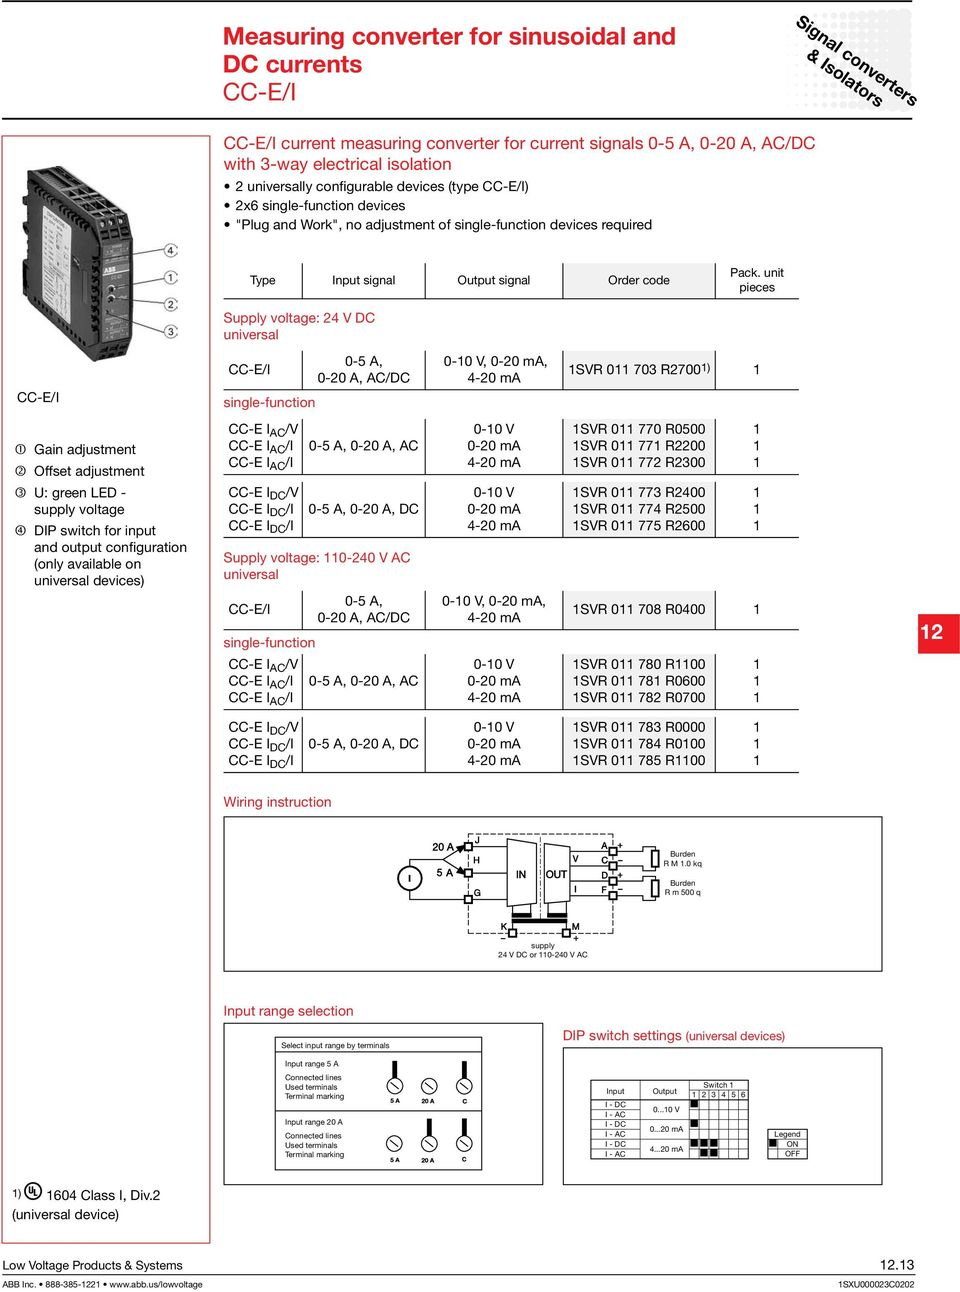 V DC universal CC-E/I CC-E/I single-function -5 A, -2 A, AC/DC - V,, SVR 73 R27 ) Gain adjustment Offset adjustment U: green LED - supply voltage DIP switch for input and output configuration (only